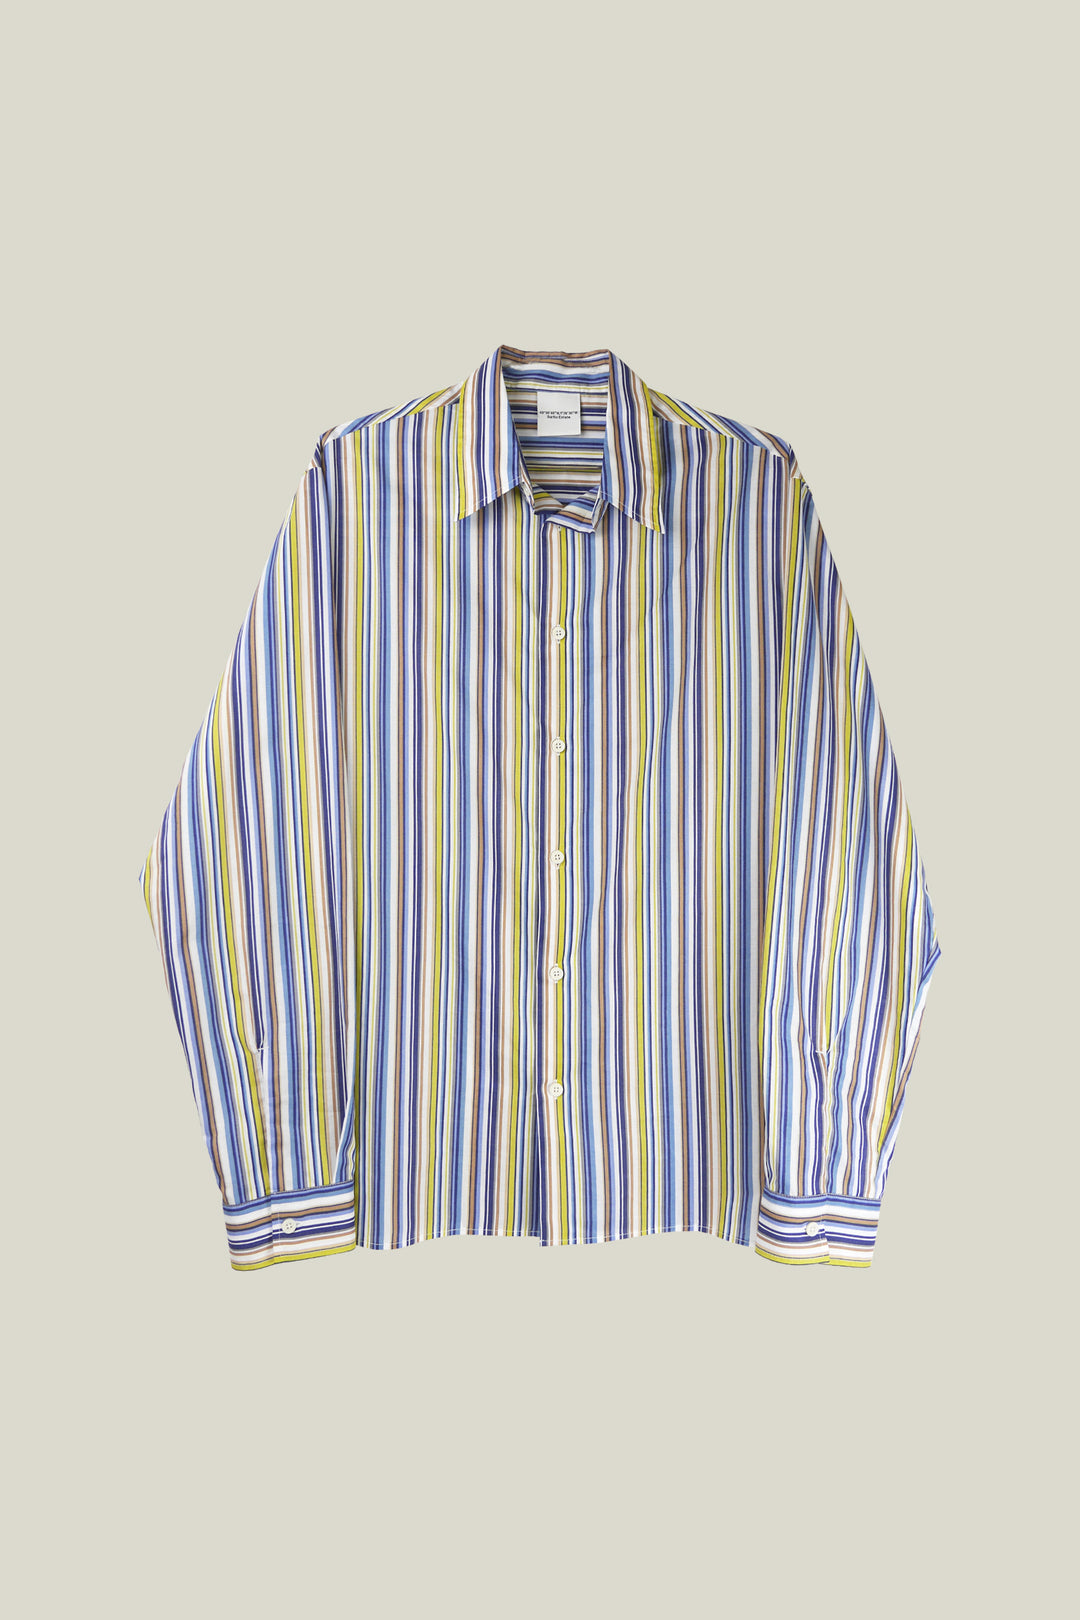 Long sleeves shirt with stripes. 100% cotton.